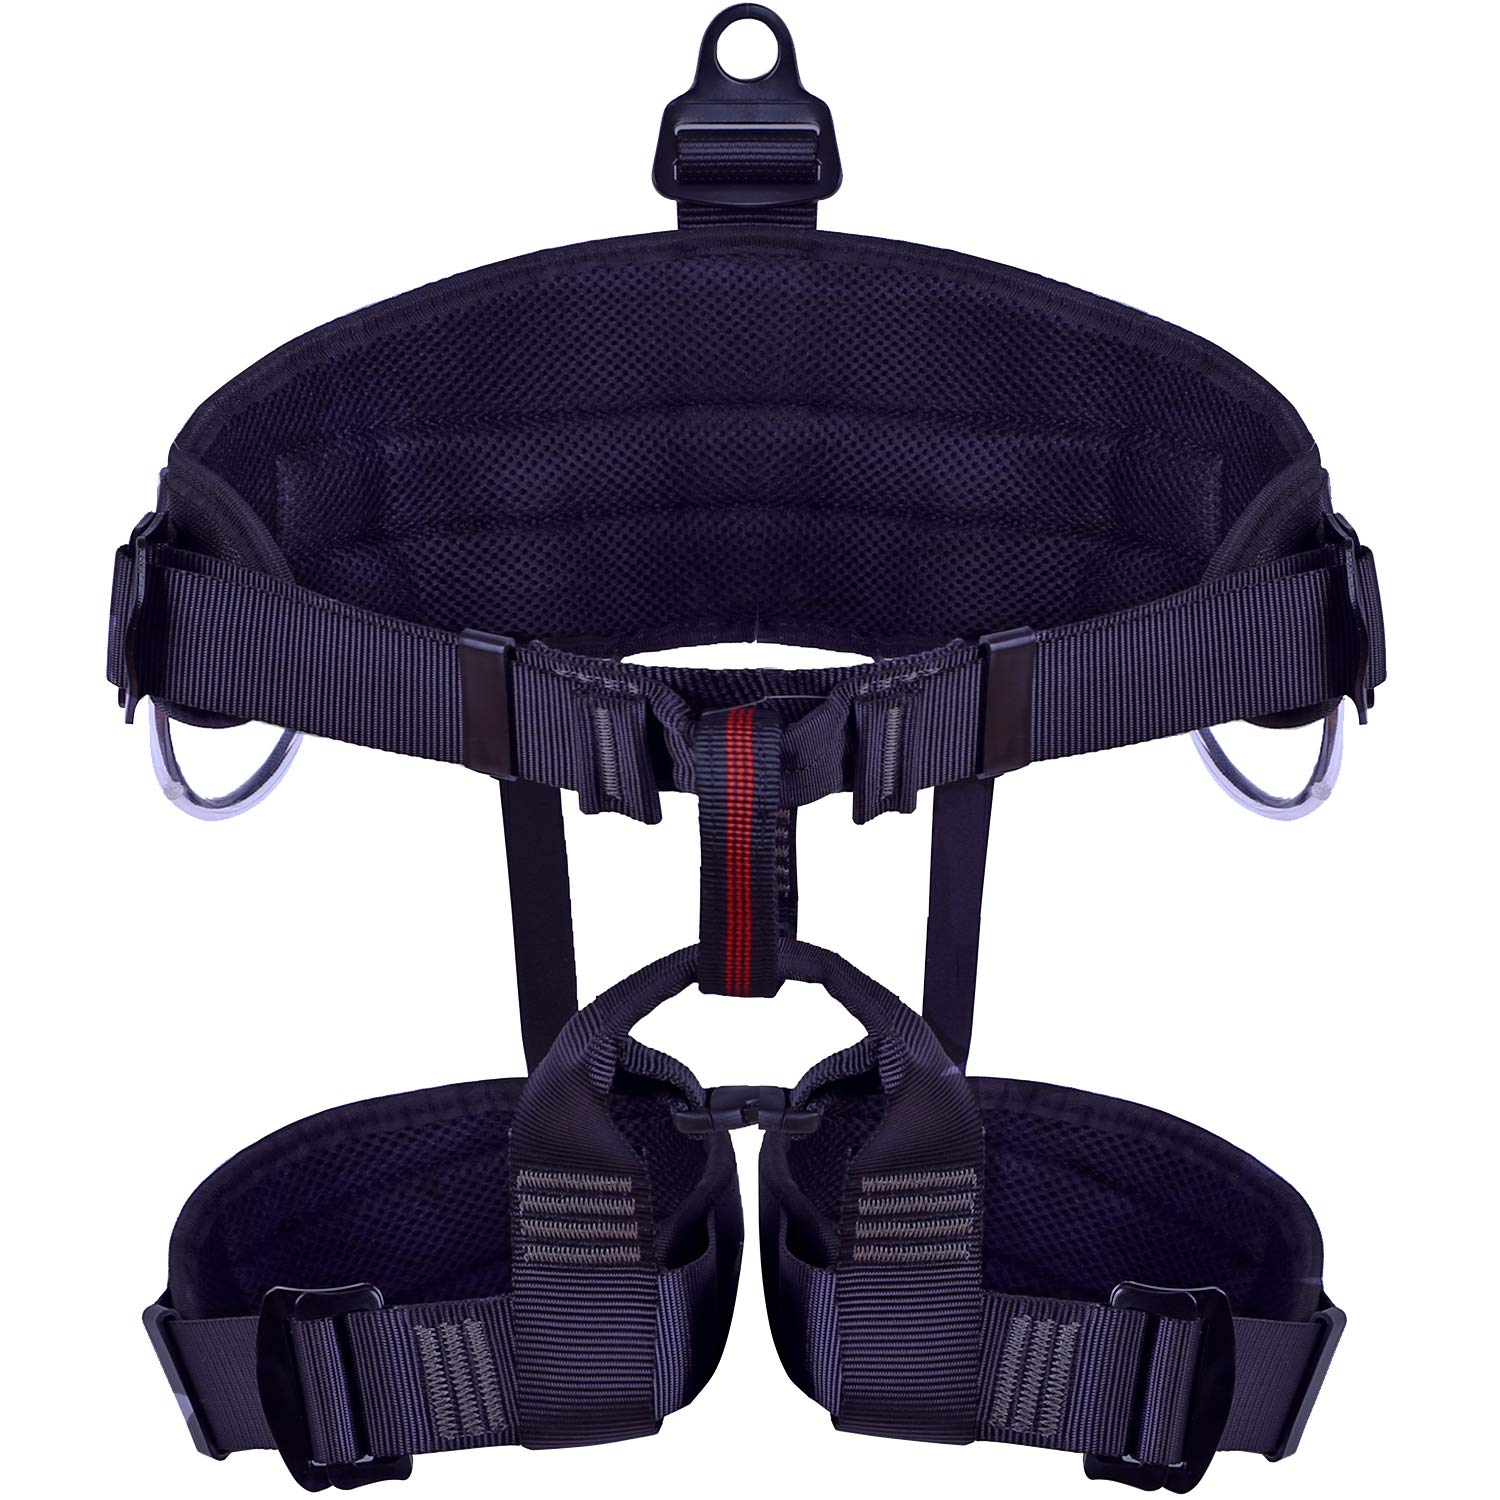 Moon Lence Climbing Harness Safe Seat Belts